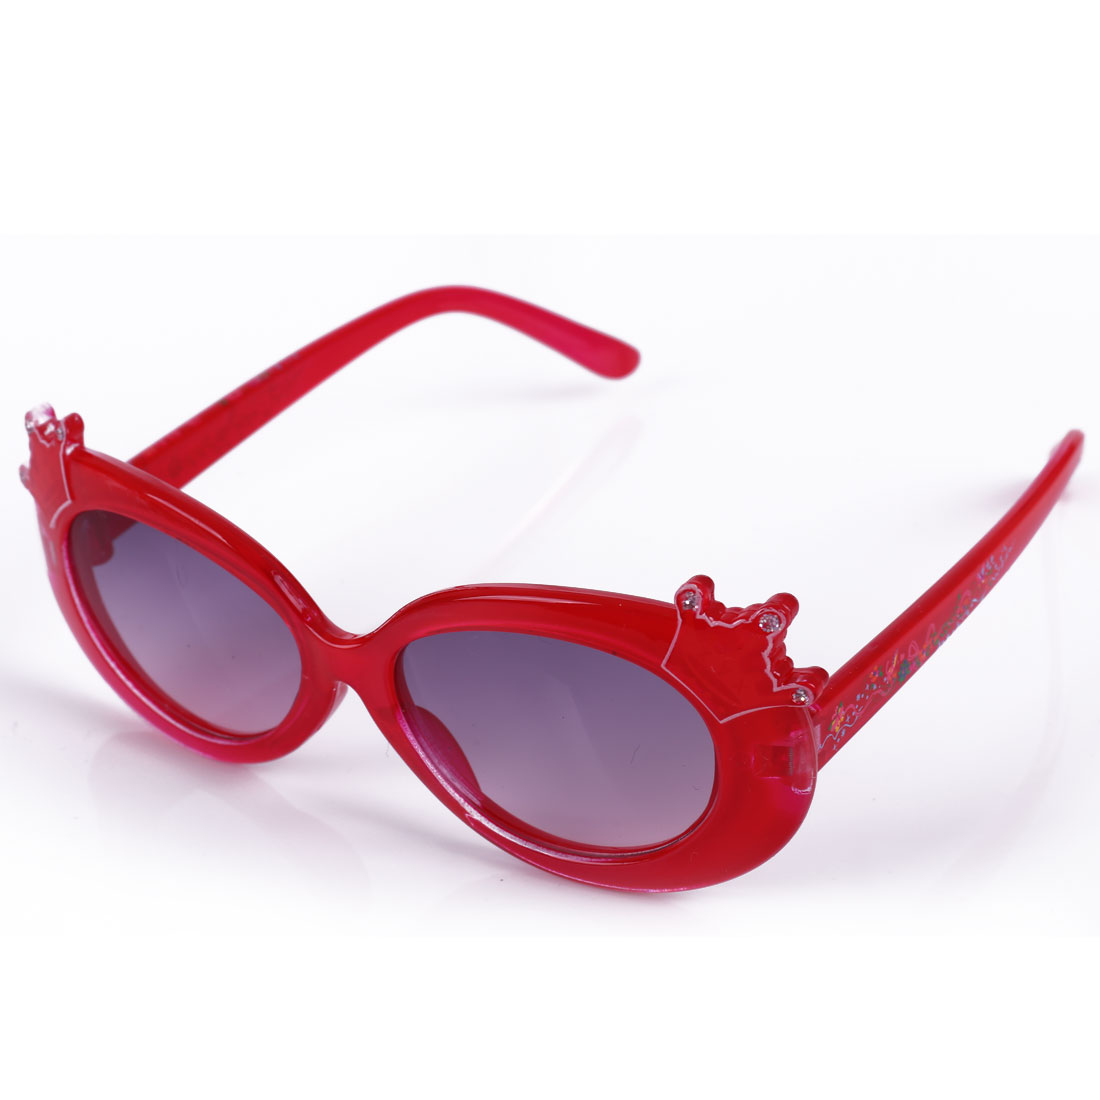 Boys Girls Plastic Full Rim Black Lens Crown Decor Sunglasses Red